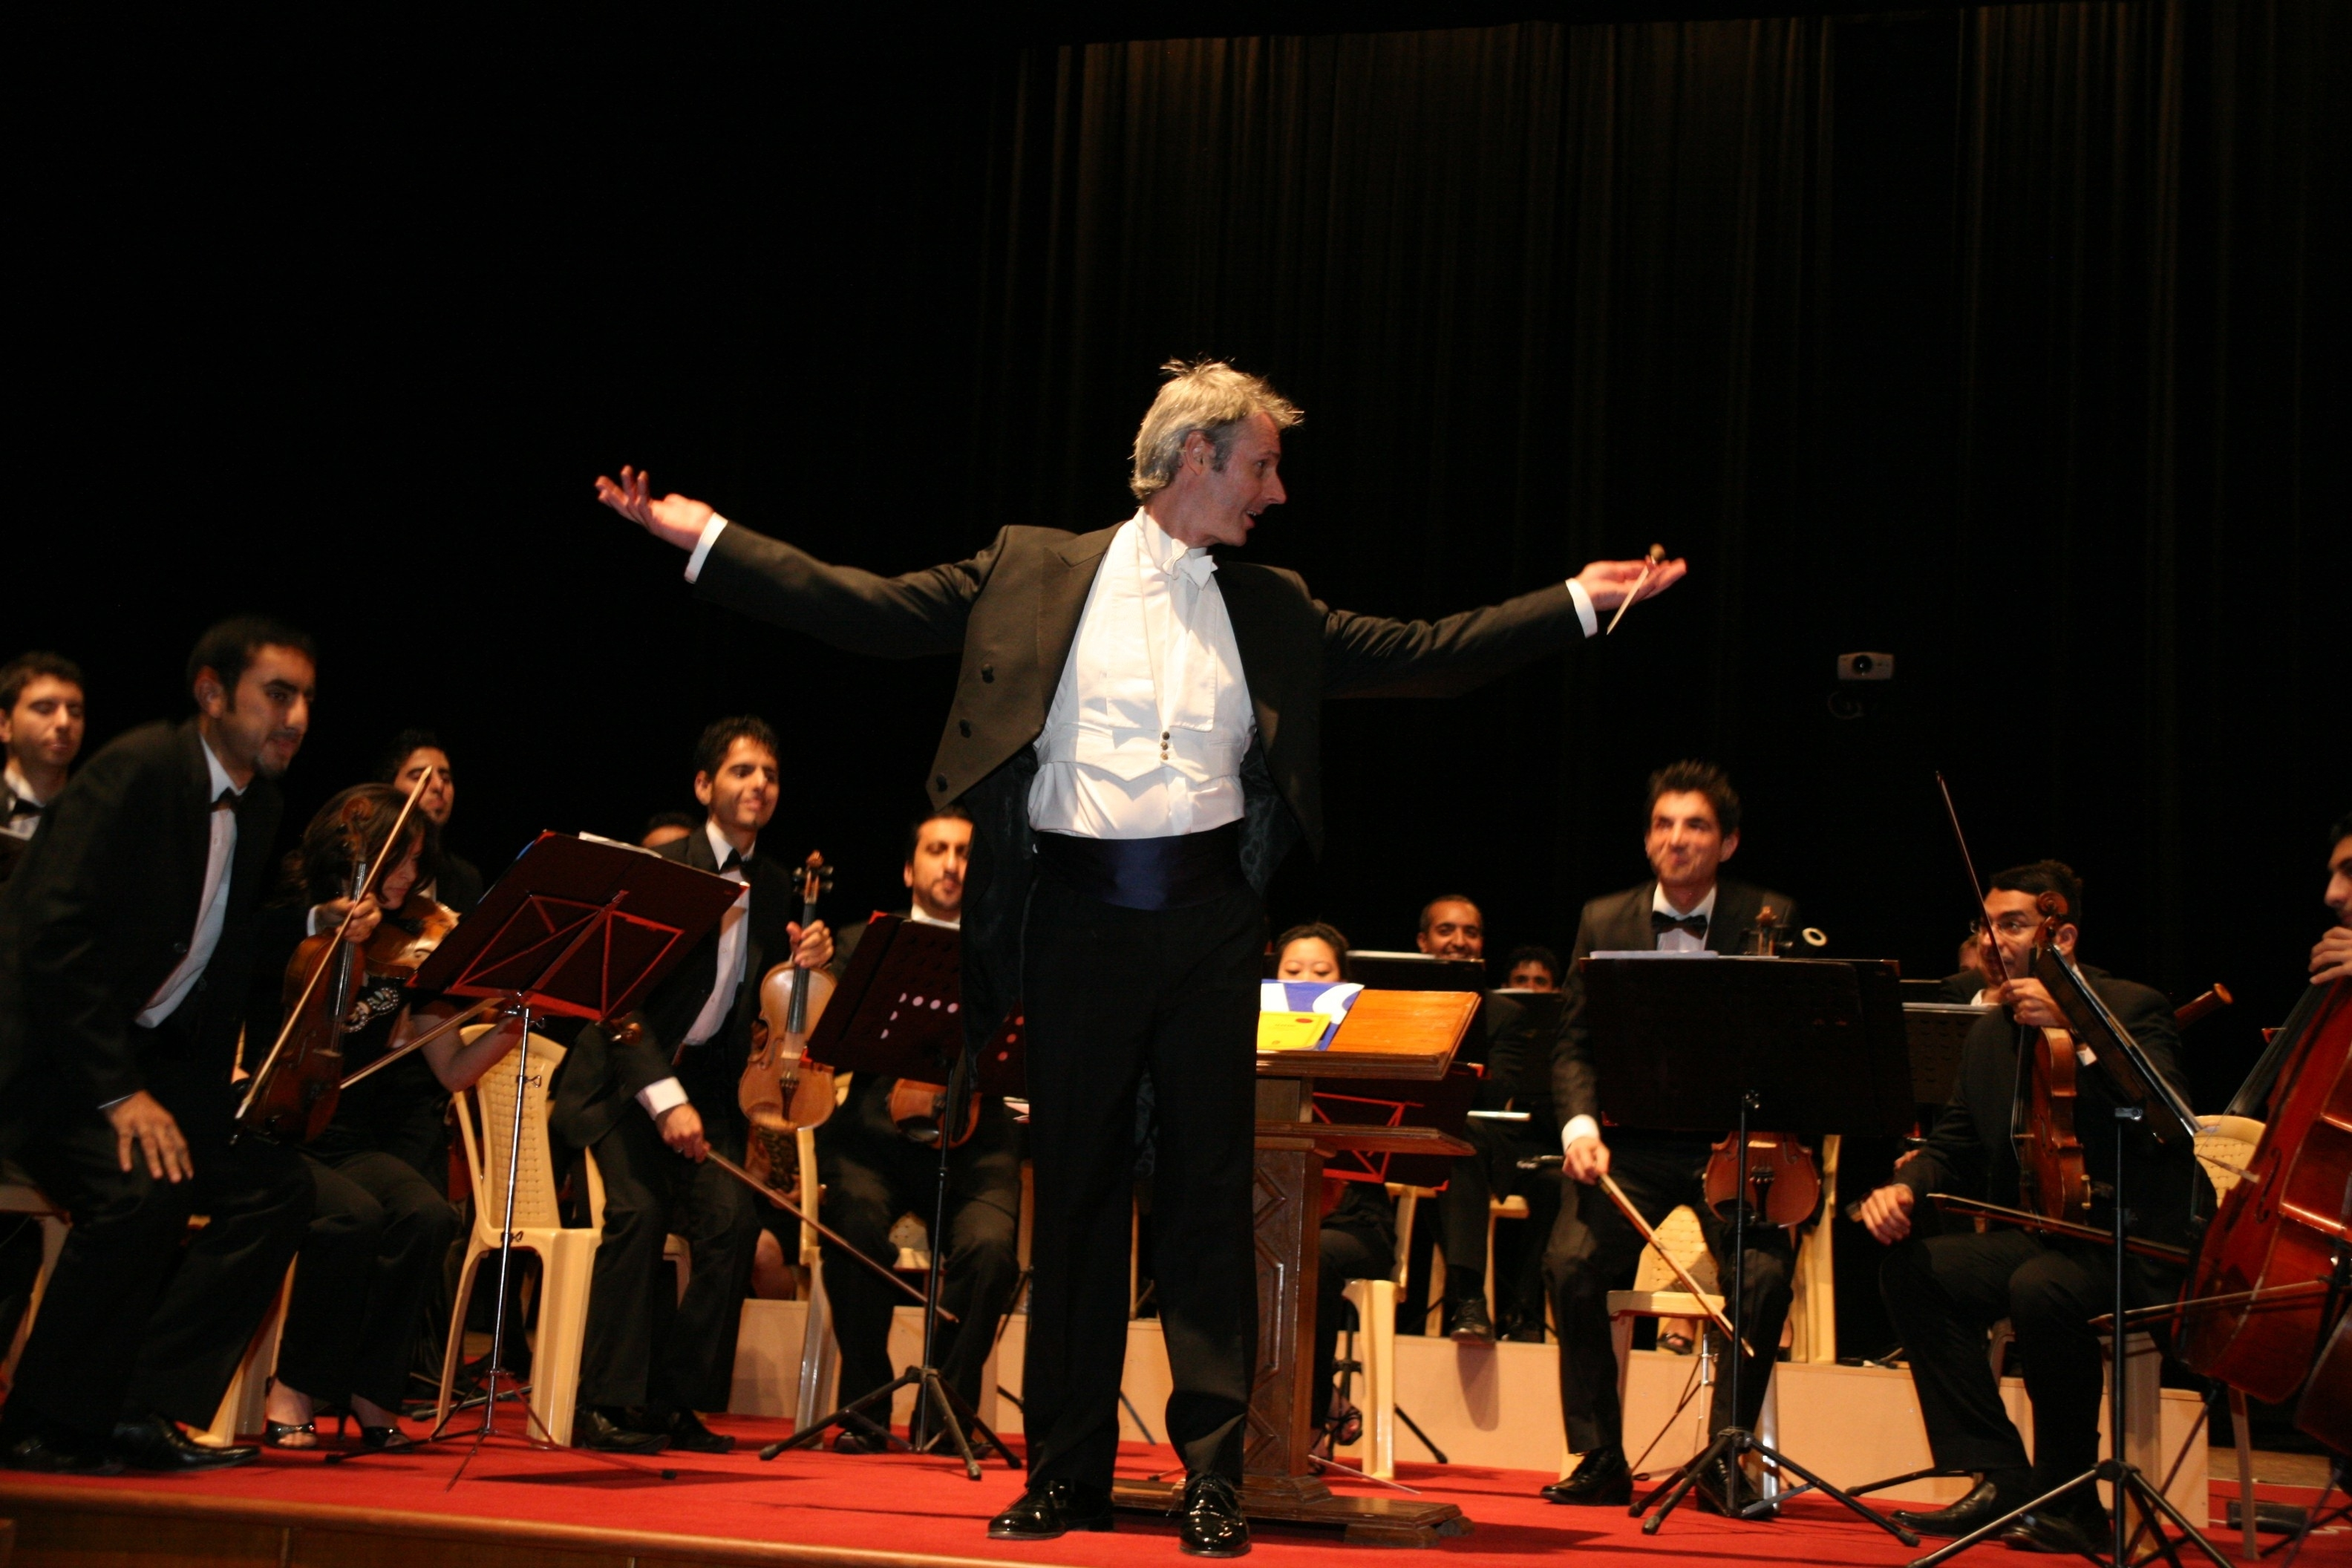 Paul MacAlindin helped create the National Youth Orchestra of Iraq.